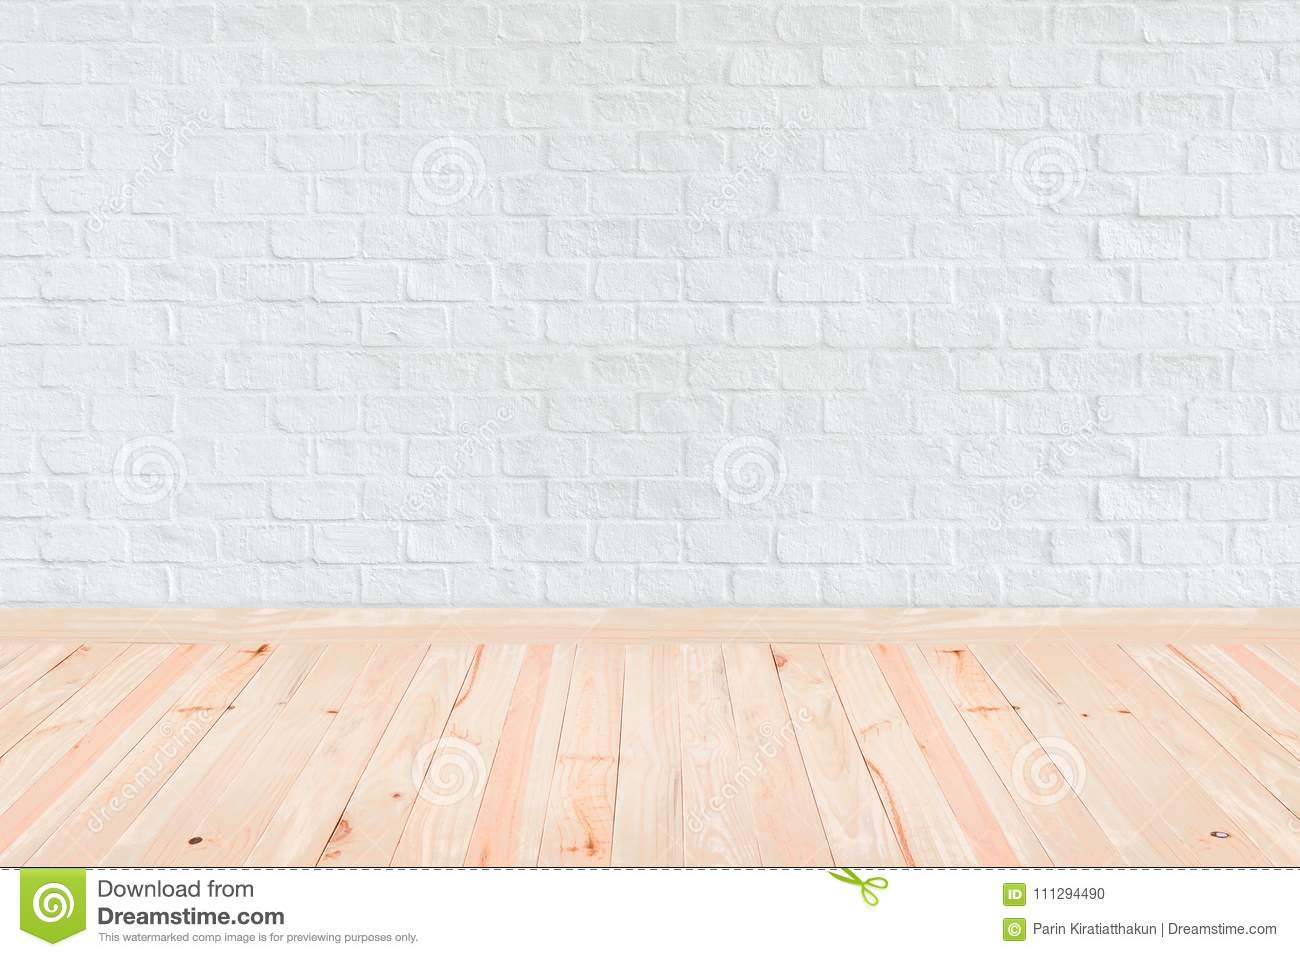 Room Interior Vintage With White Brick Wall And Wood Floor Background Stock Photo Image Of Decorative Light 111294490